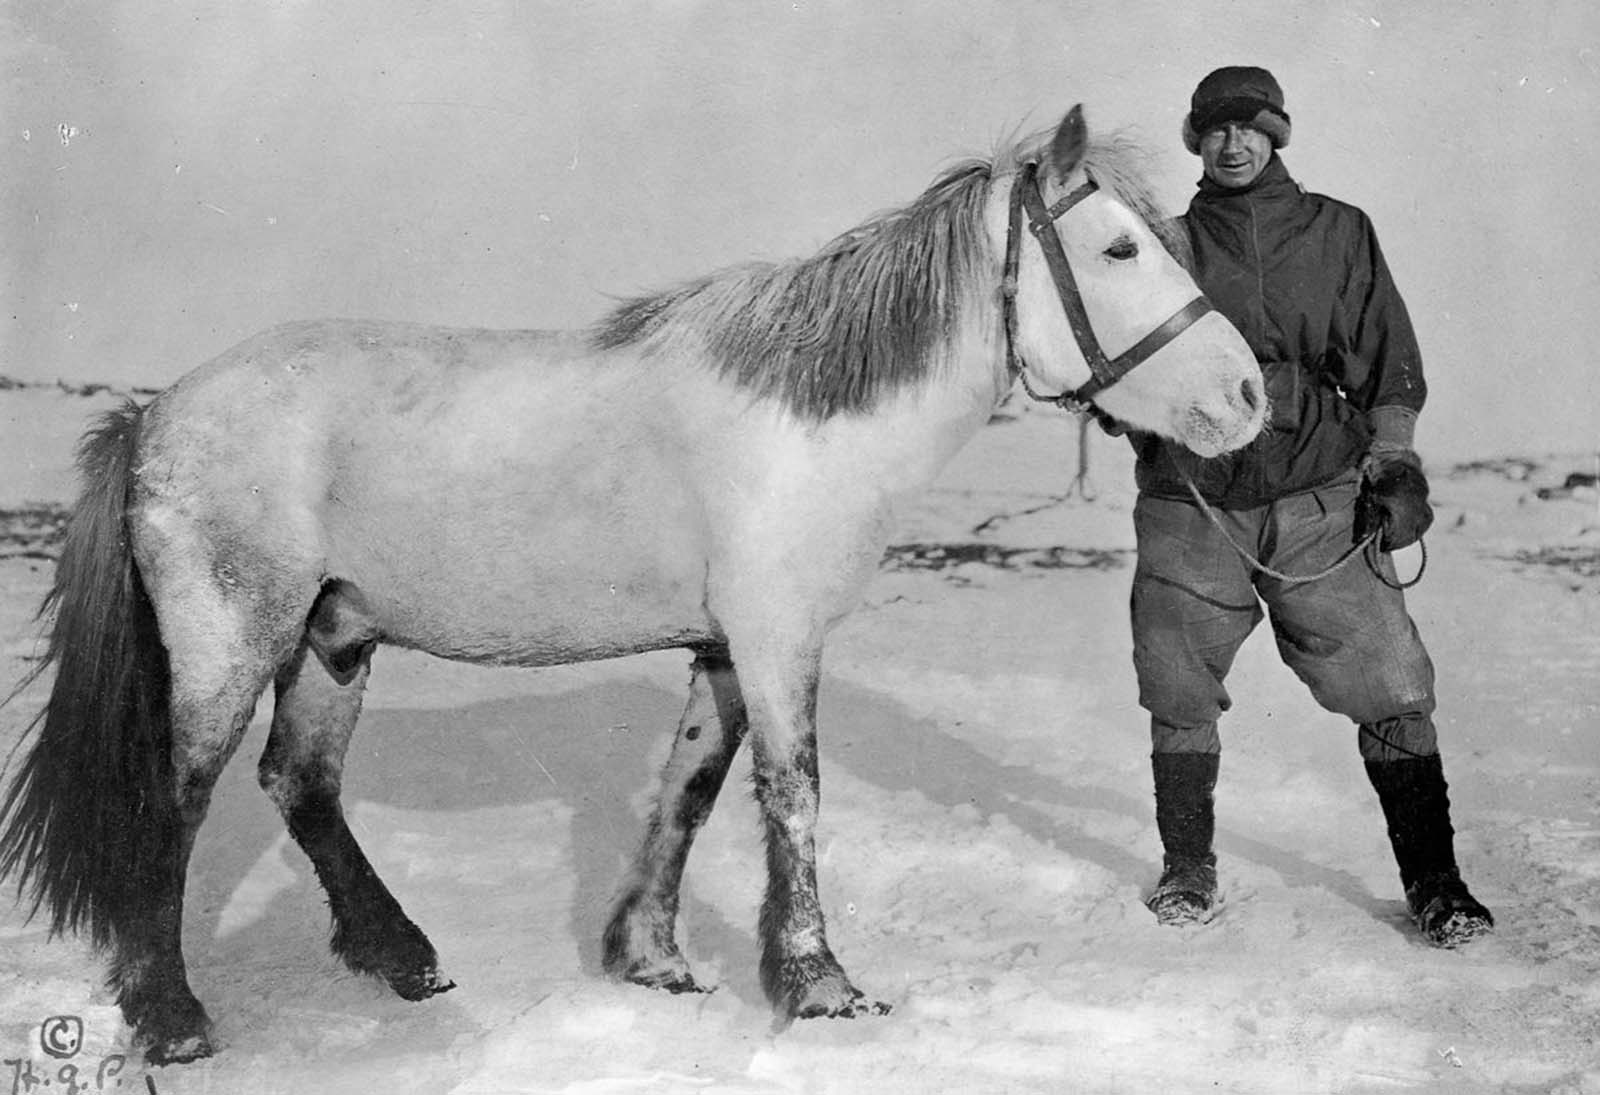 Chief Scientist Dr. Edward Wilson with Nobby the pony. The ponies were brought to haul sledges but proved ill-suited to the Antarctic climate and terrain. 1911.